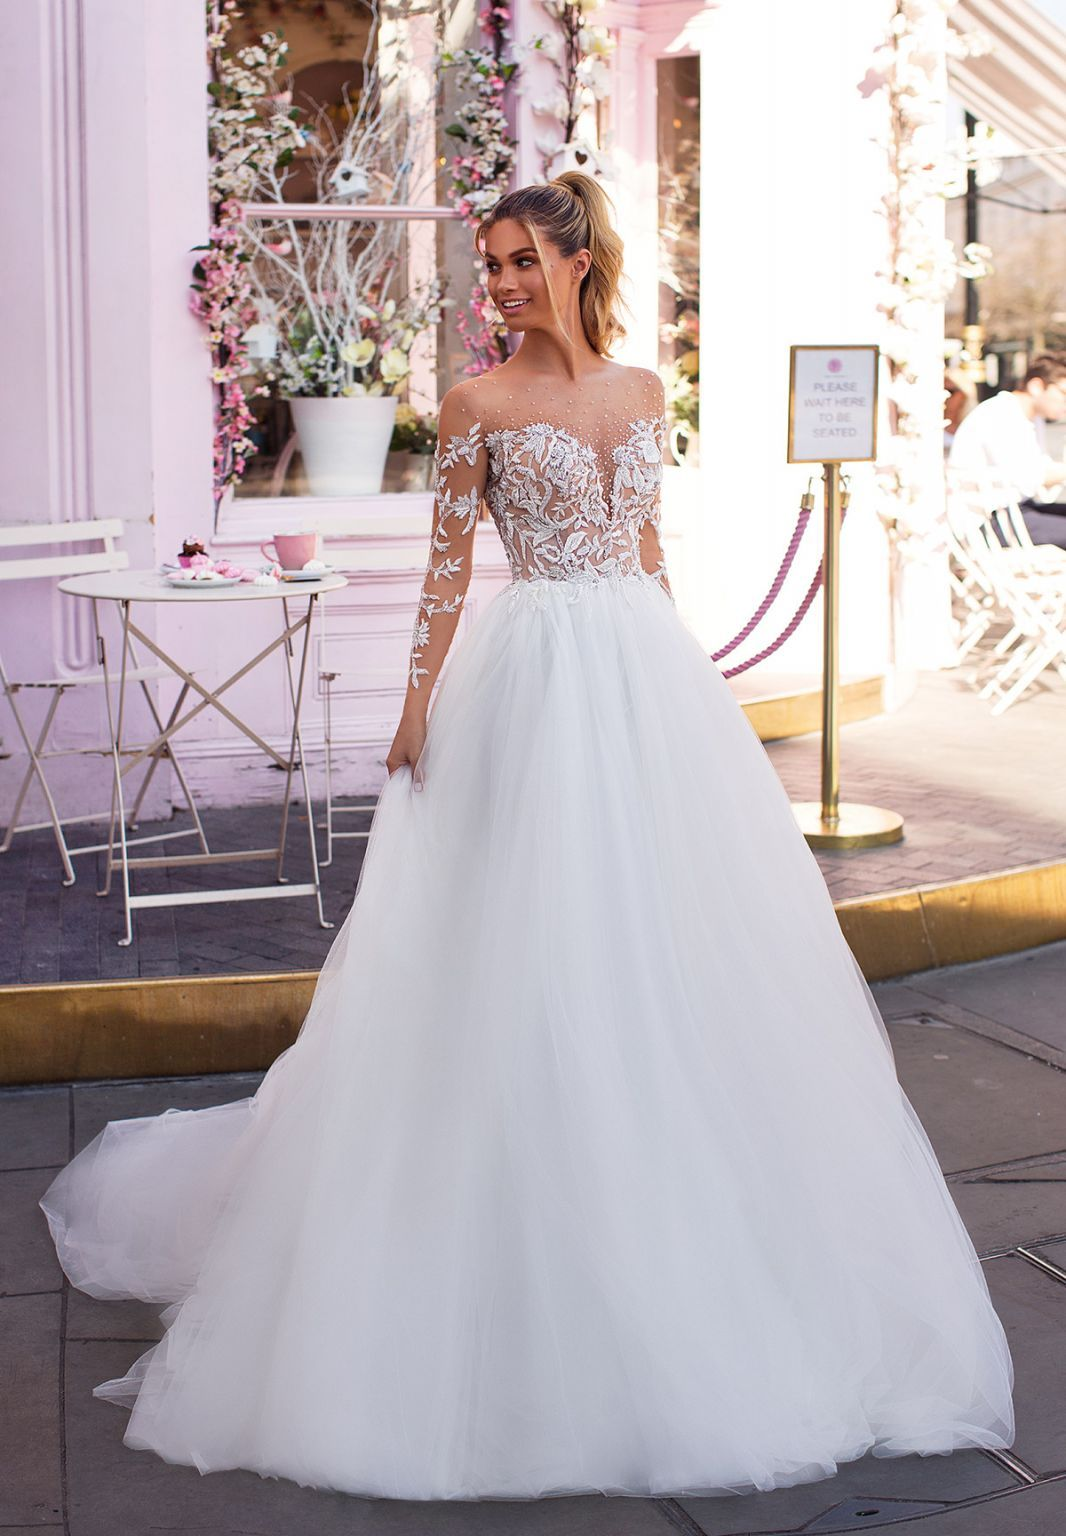 Milla Nova Paris Wedding Dress | New